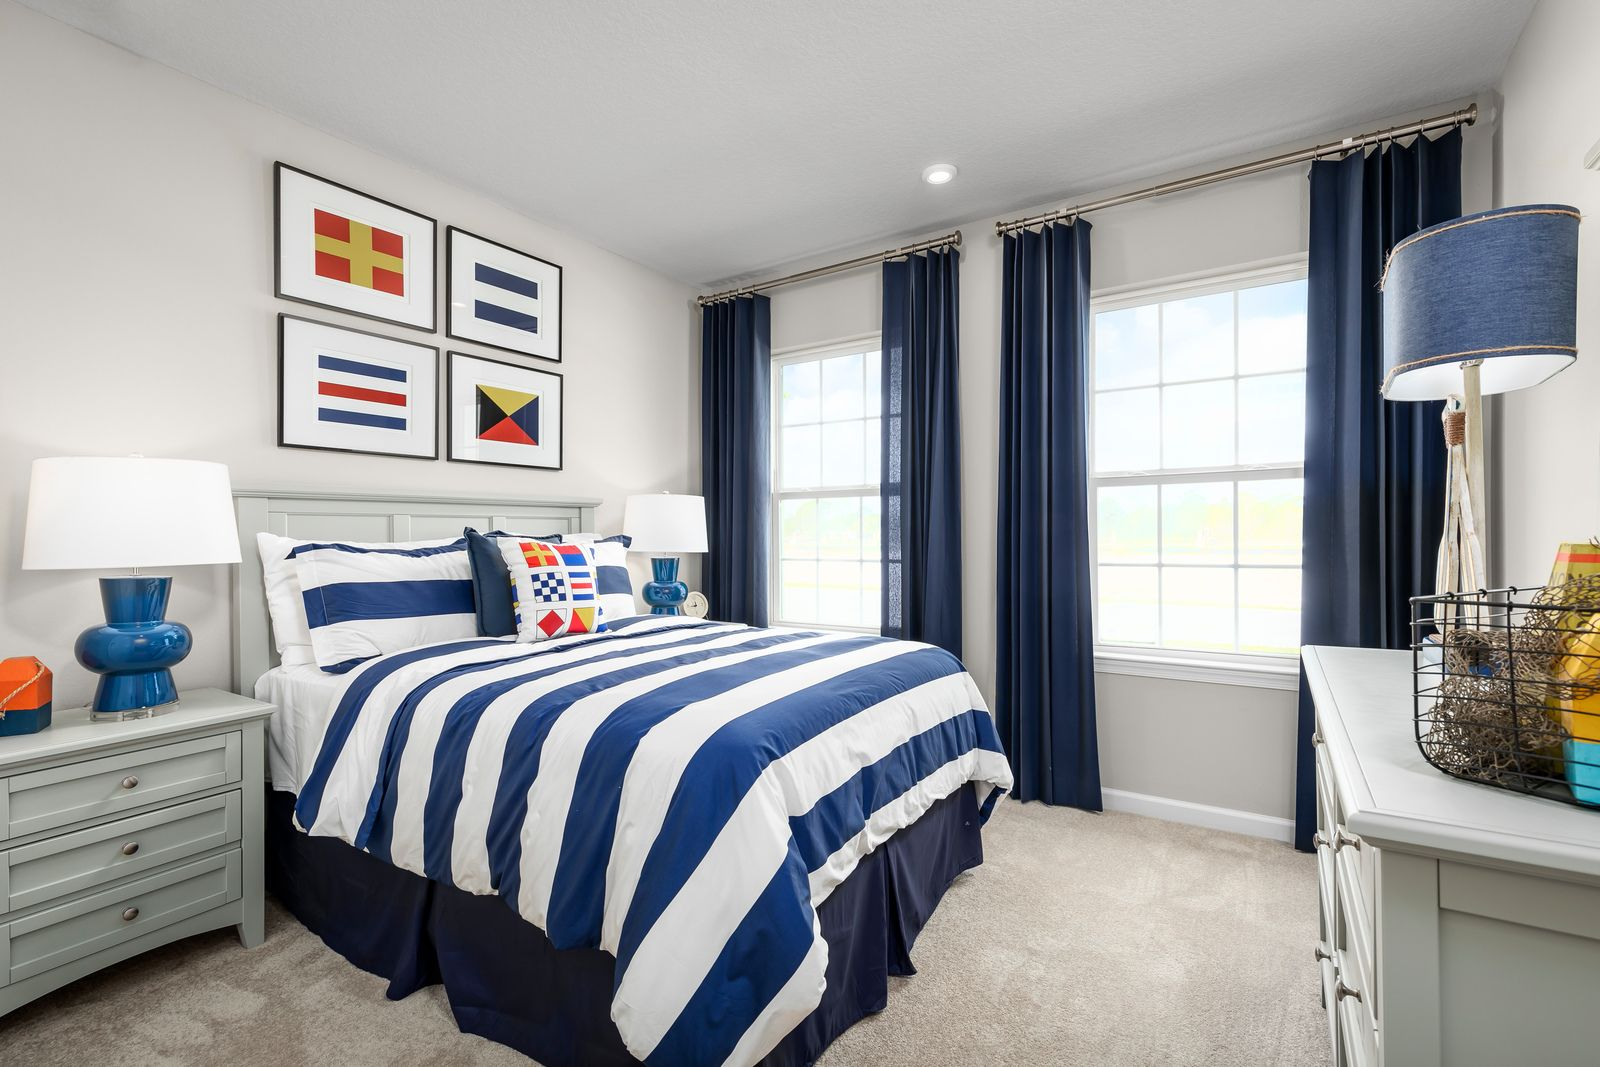 Bedroom featured in the Baymont By Ryan Homes in Orlando, FL